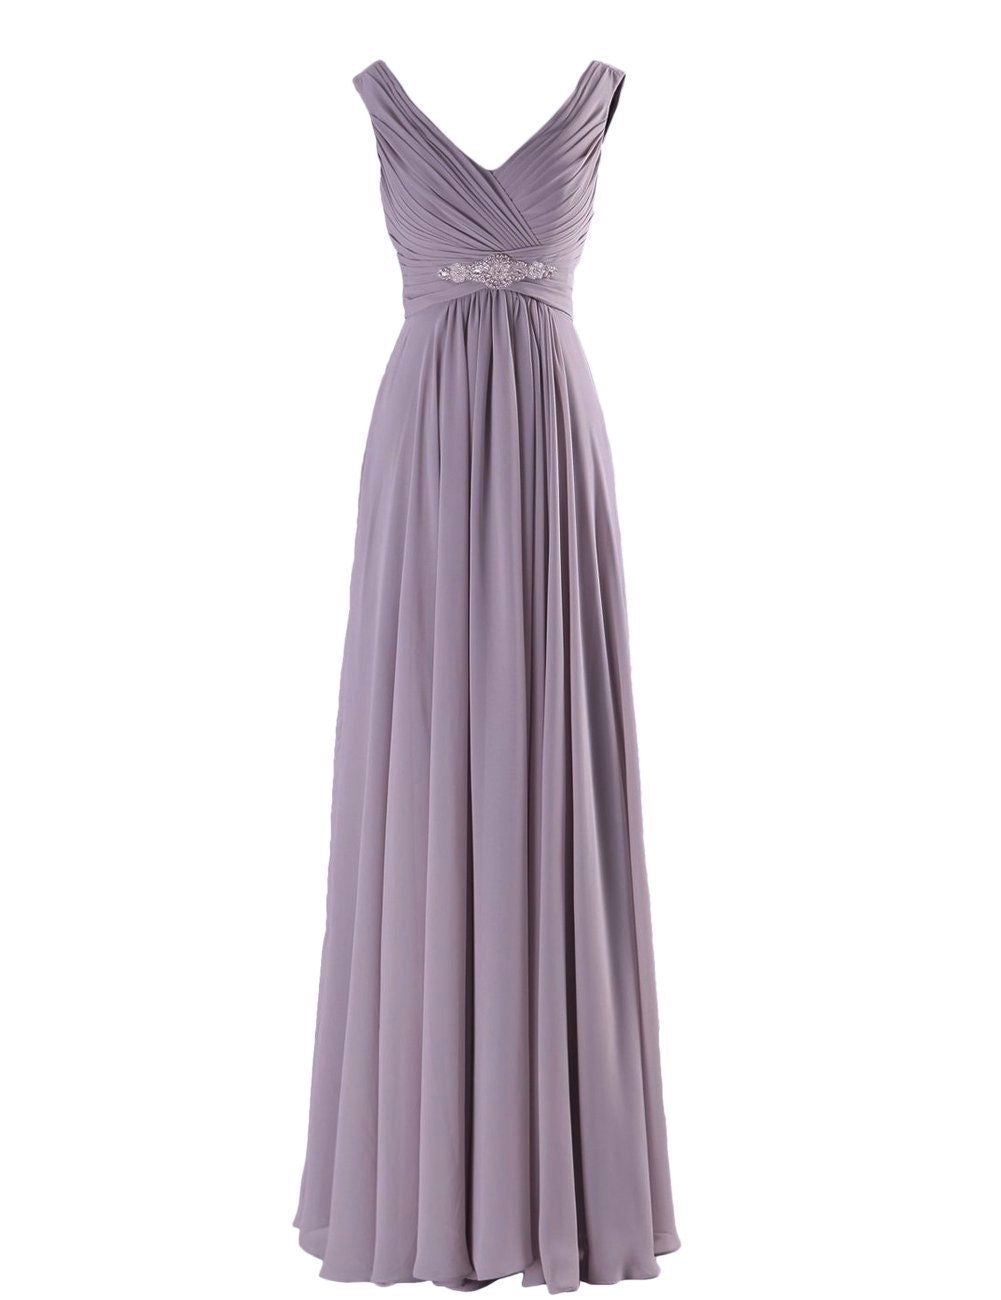 Henley Lavender mauve Grecian Chiffon long bridesmaid wedding bridal evening prom cruise ballgown formal occasion dress uk